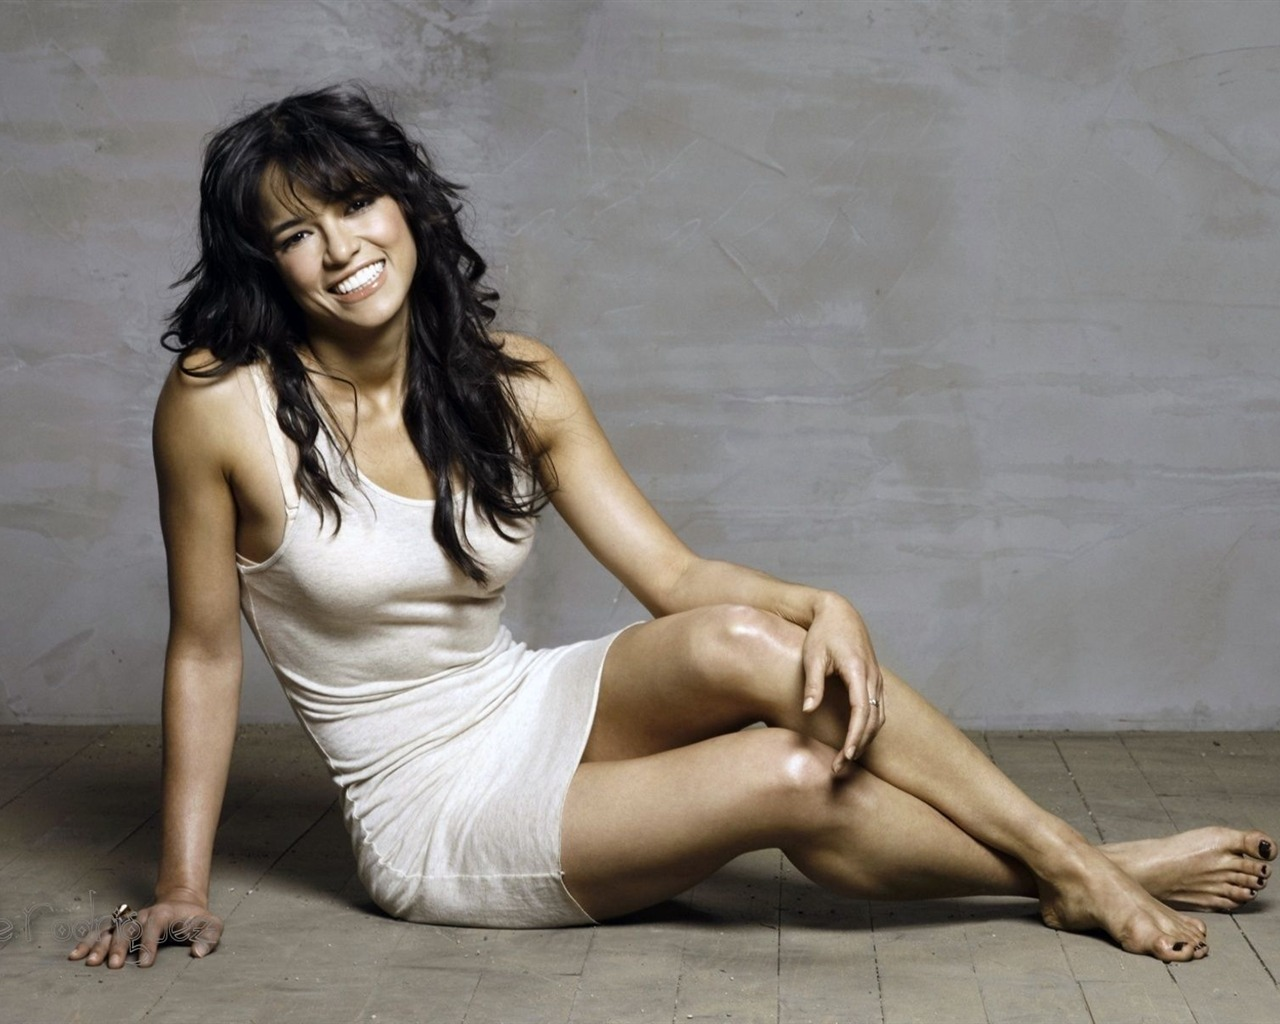 Michelle Rodriguez #002 - 1280x1024 Wallpapers Pictures Photos Images